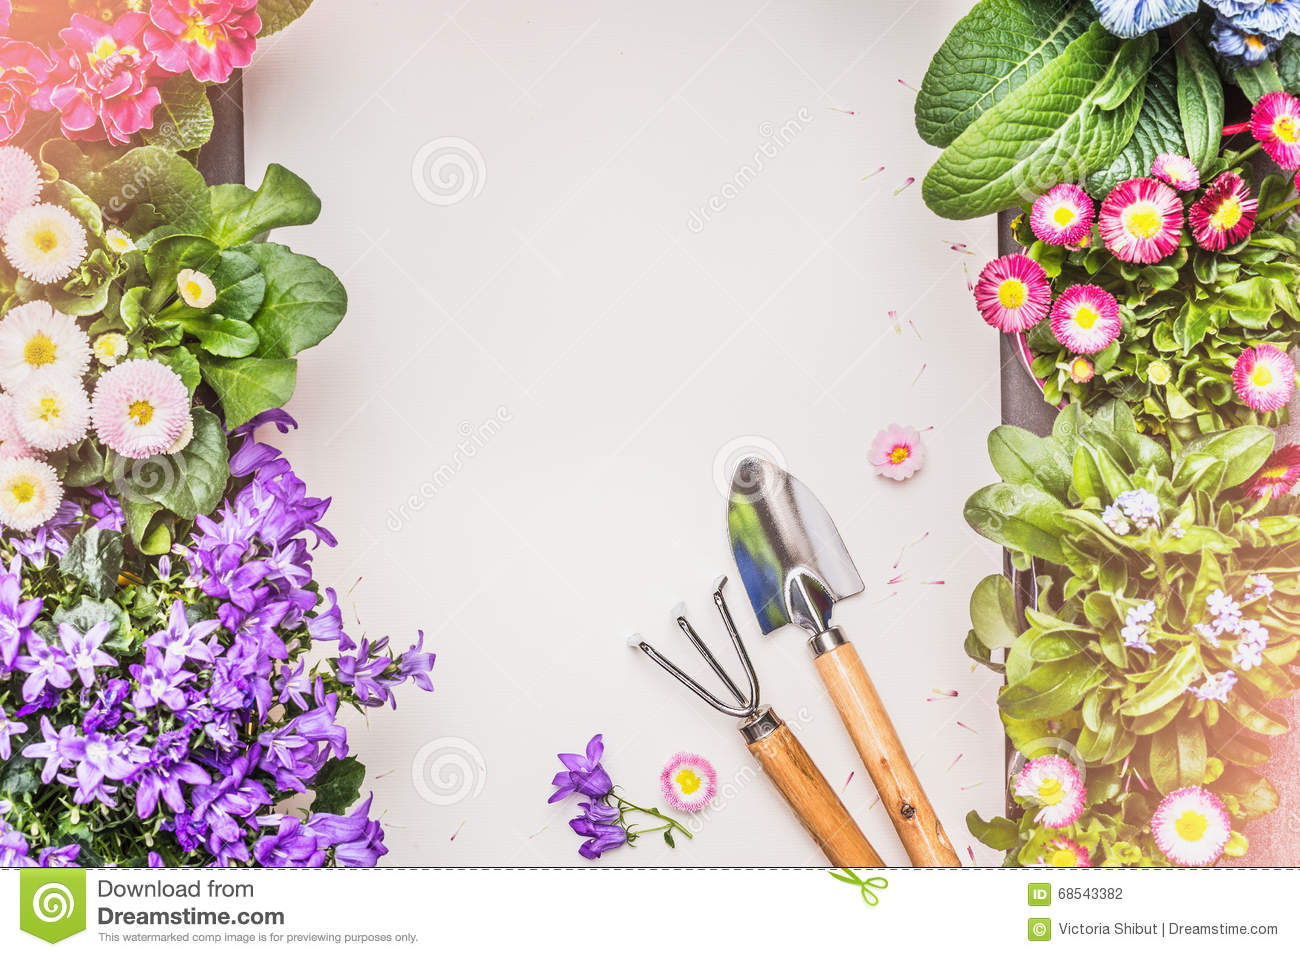 gardening background with various garden flowers and tools on gray concrete top view stock. Black Bedroom Furniture Sets. Home Design Ideas